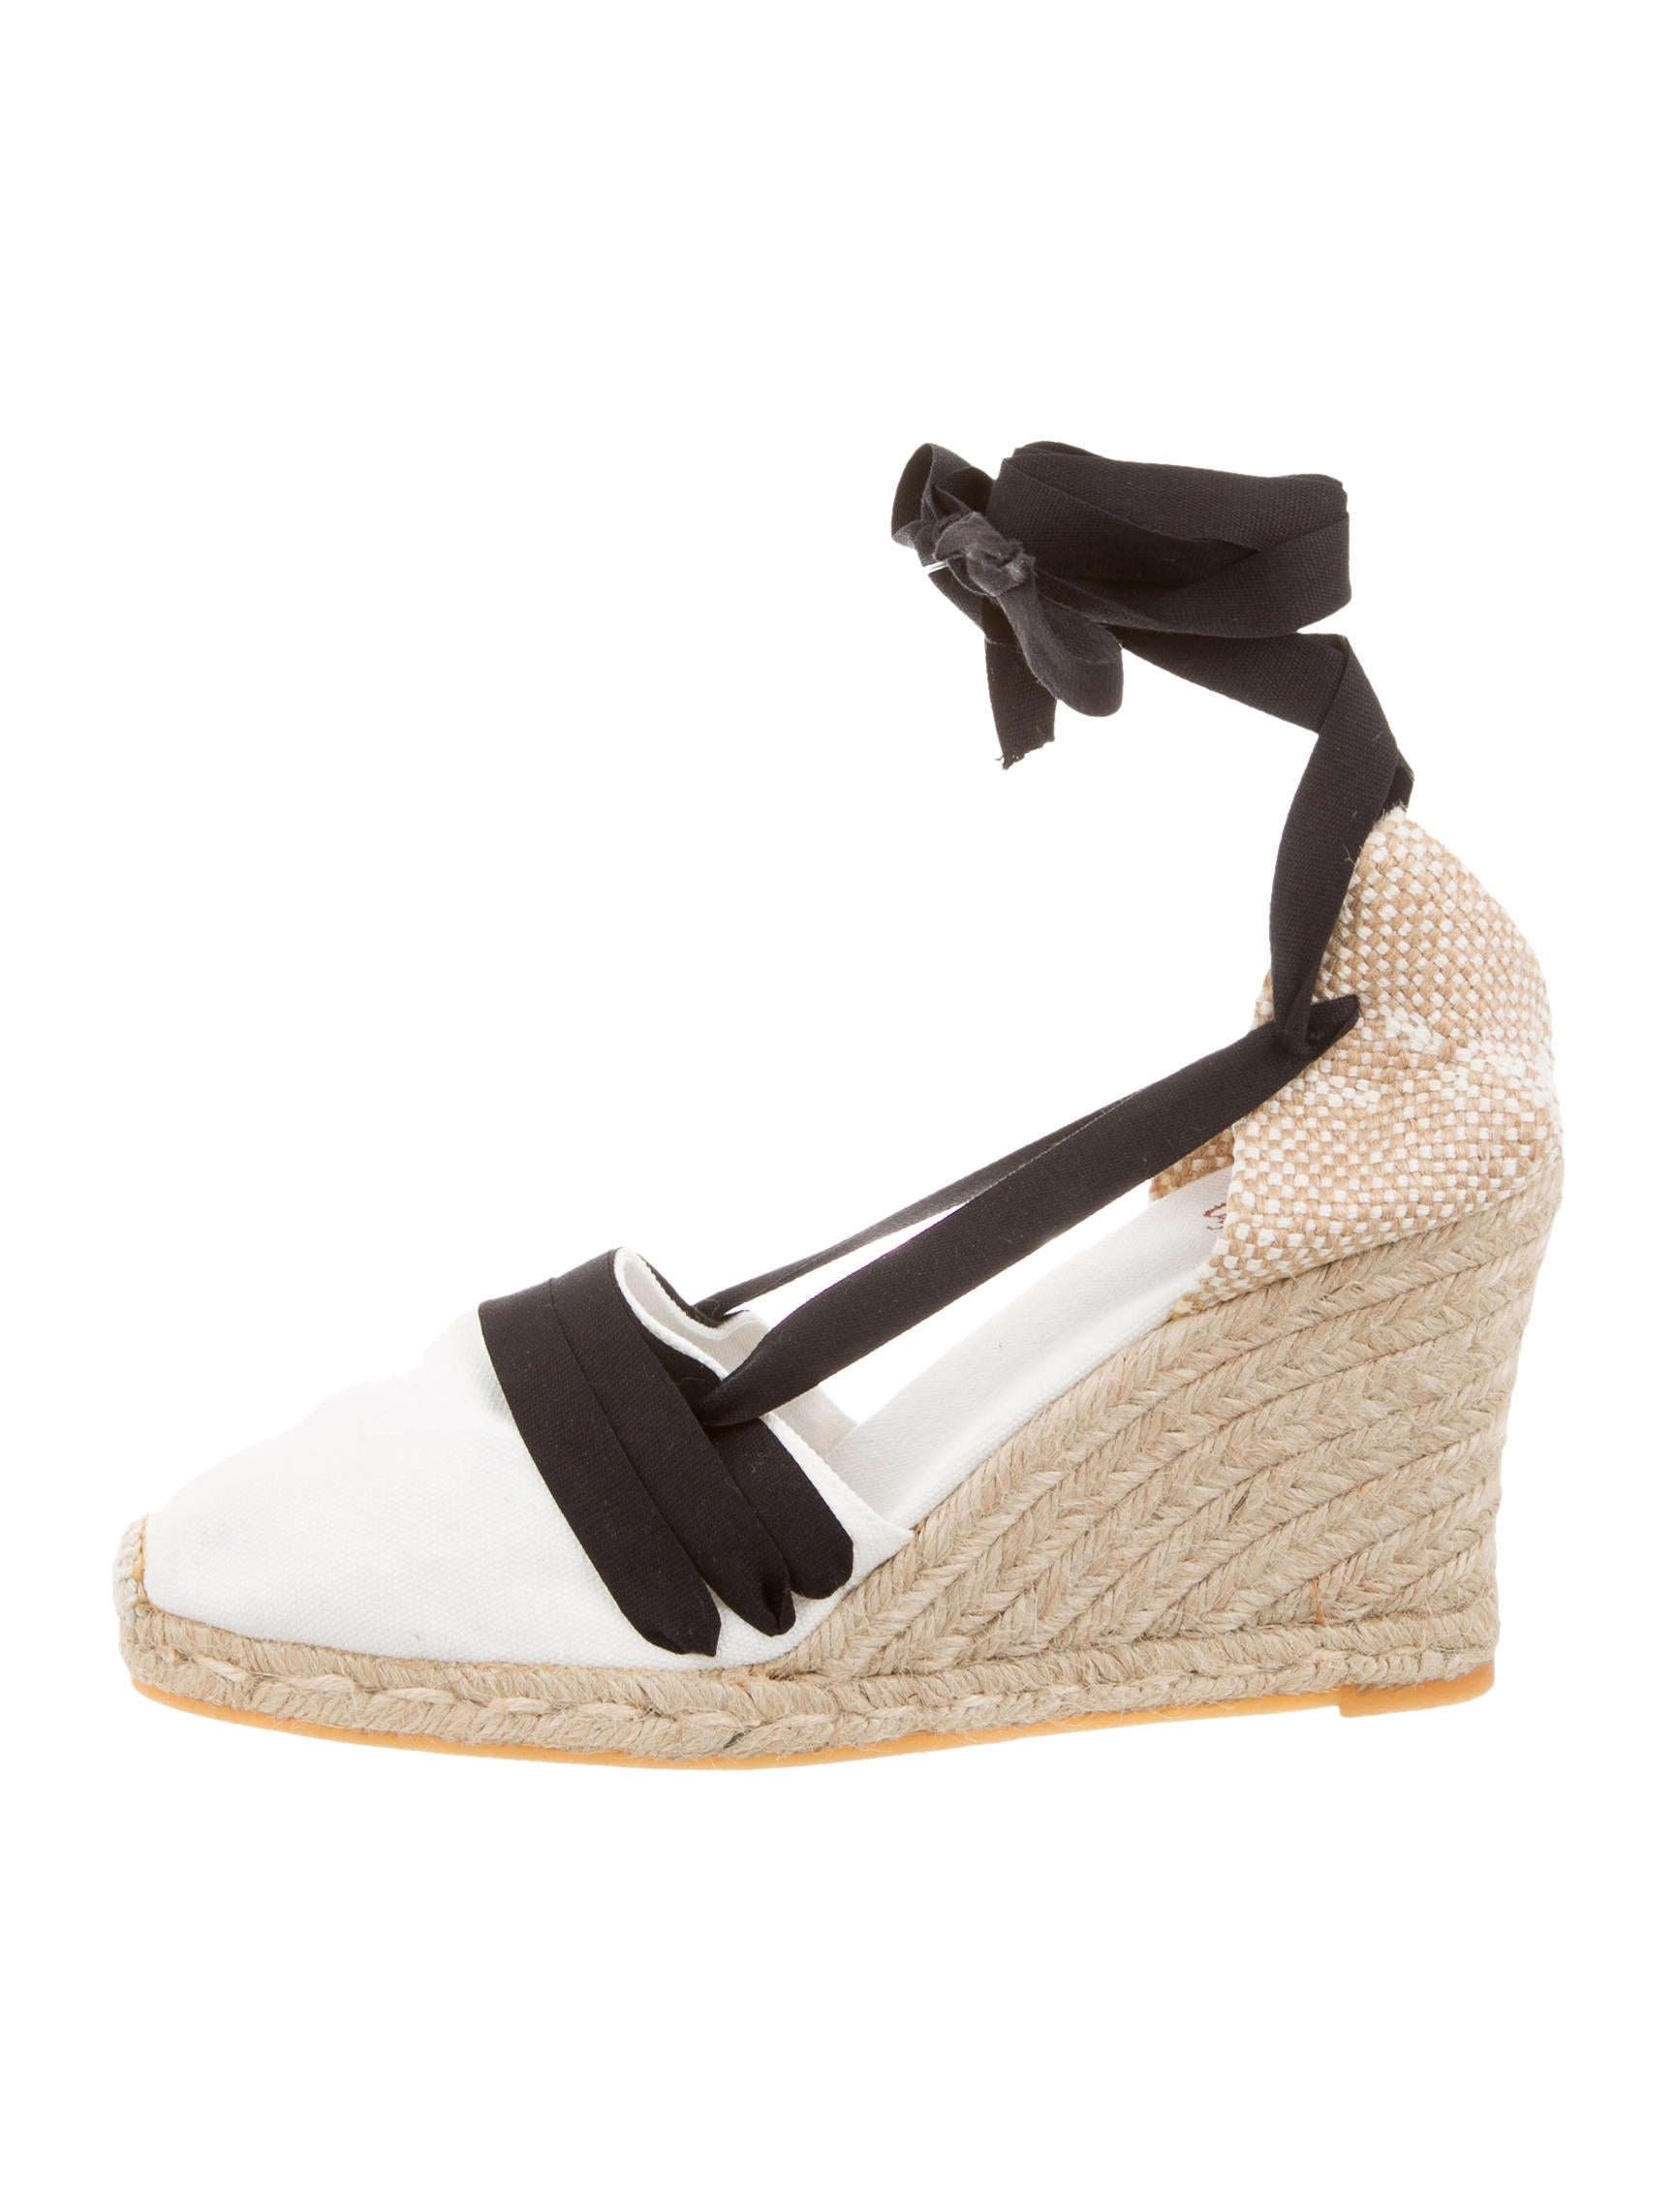 castaner canvas espadrille wedges shoes wn820175 the